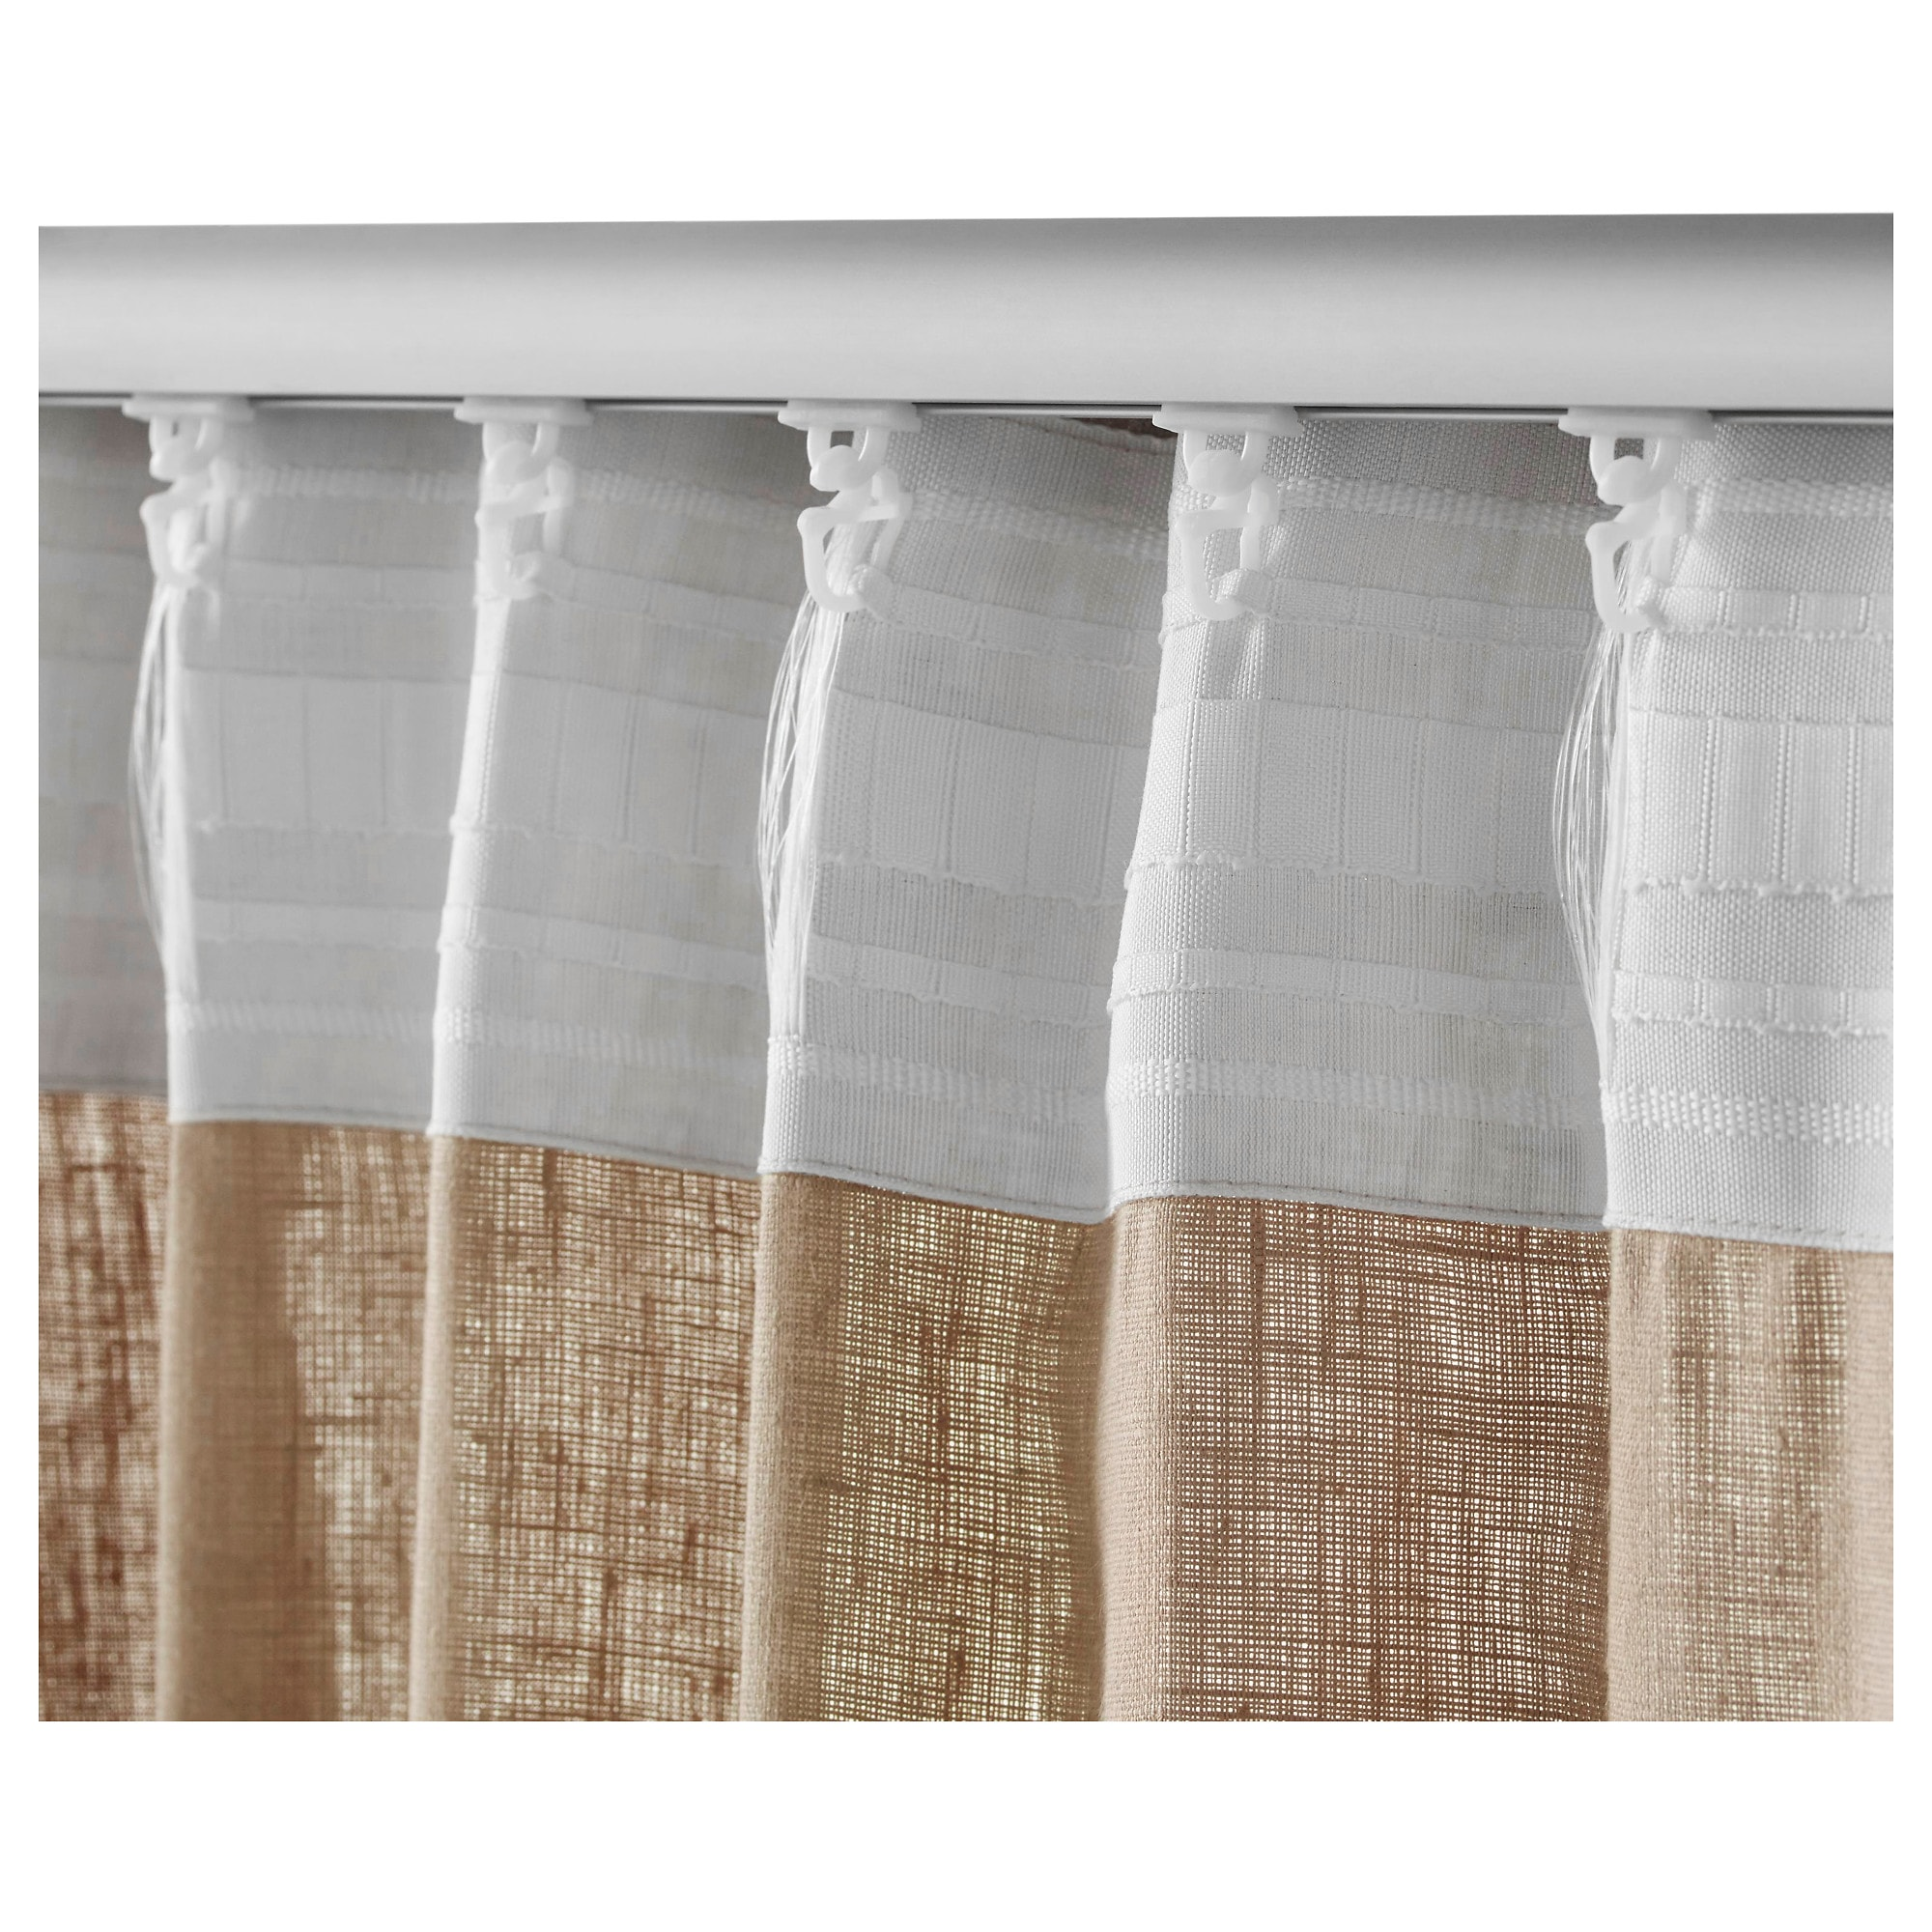 Gathered curtains - Gathered Curtains 26